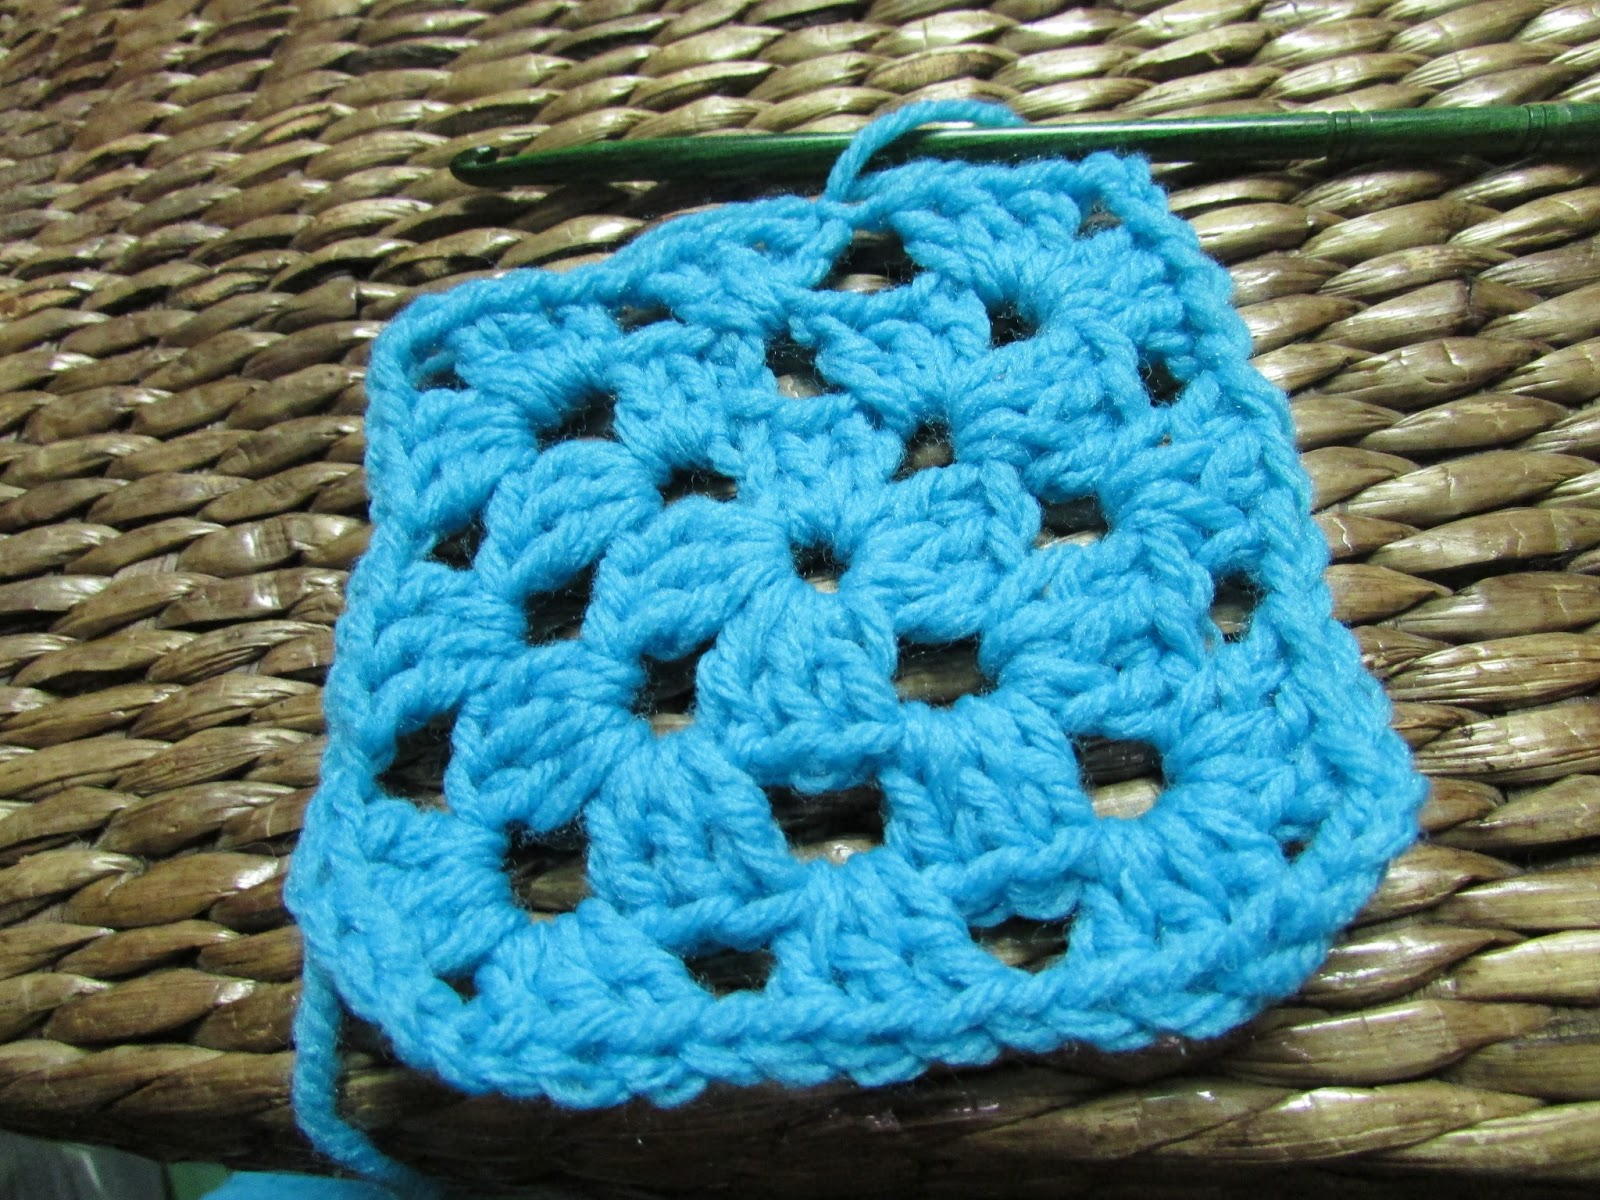 Basic Crochet Pattern For Granny Square : Off The Hook: Basic Granny Square, Solid Color